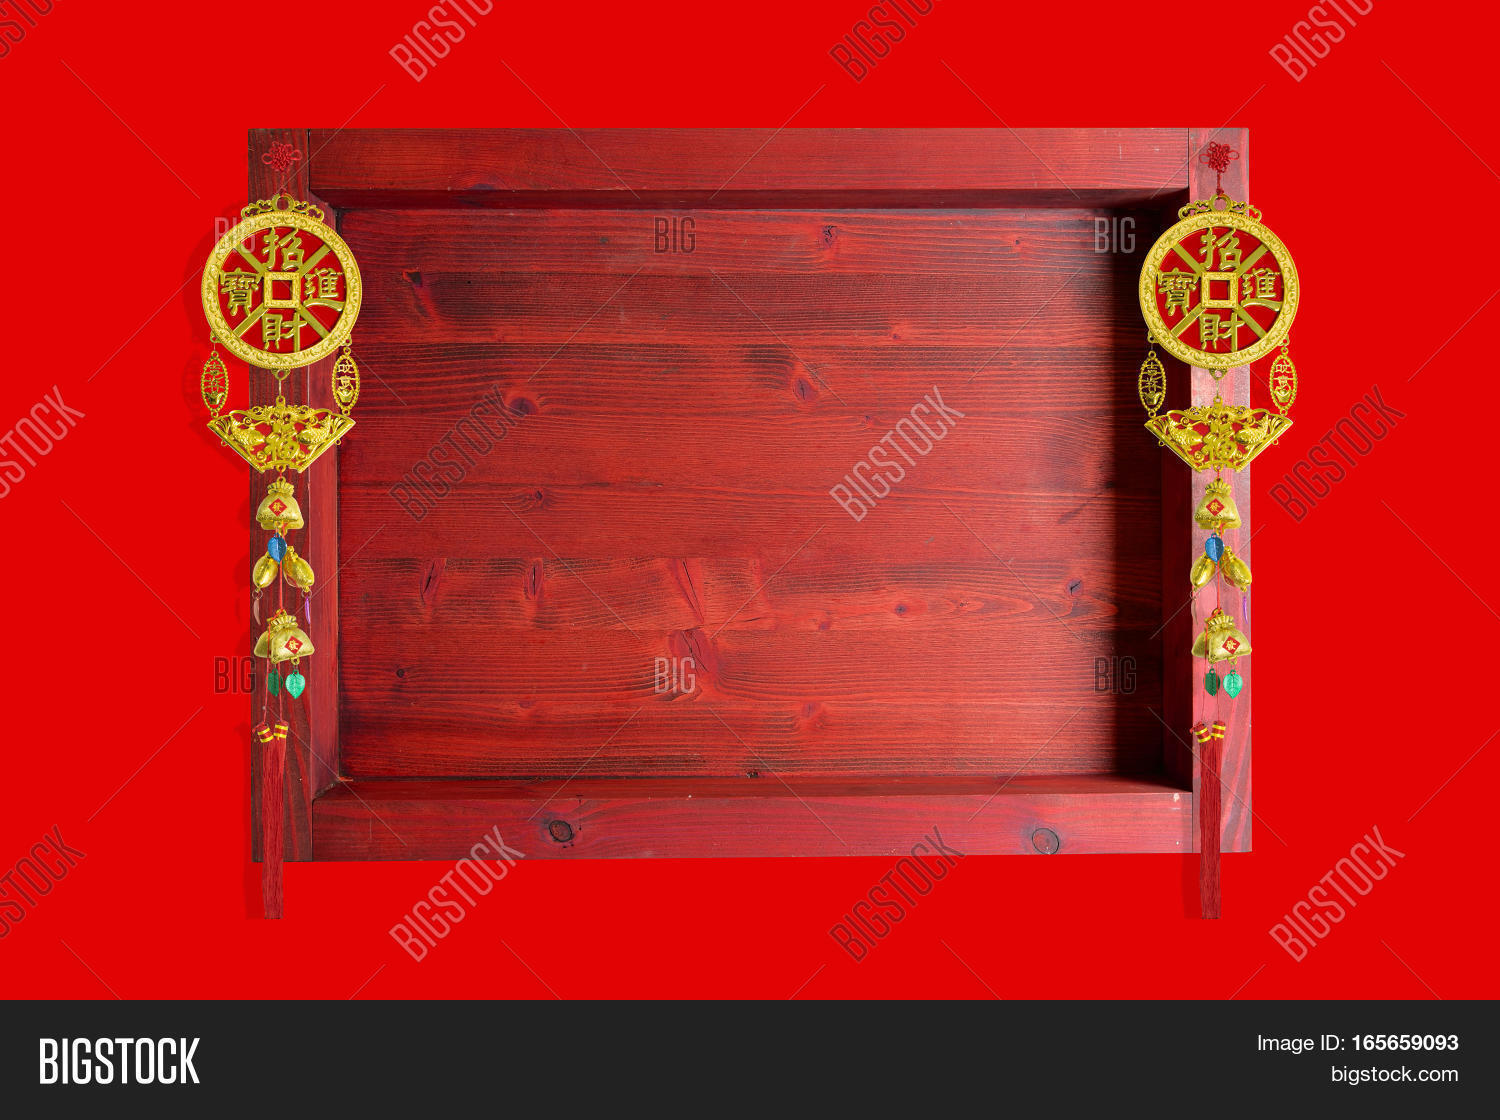 Chinese Good Luck Image Photo Free Trial Bigstock